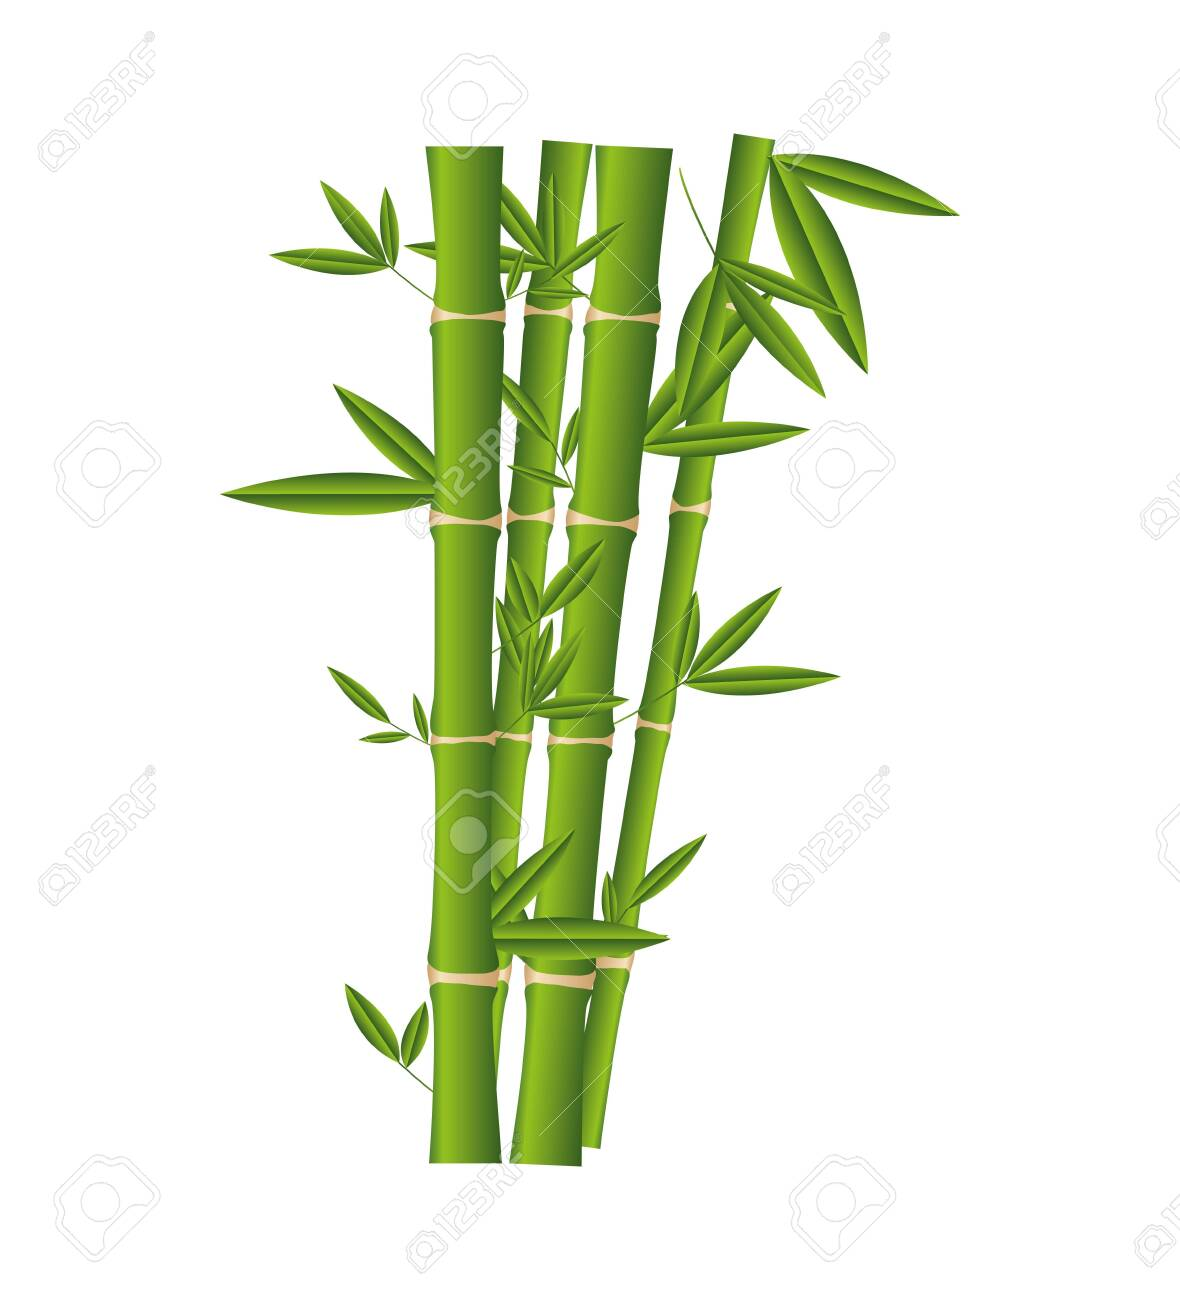 bamboo plant isolated icon vector illustration design - 123480045